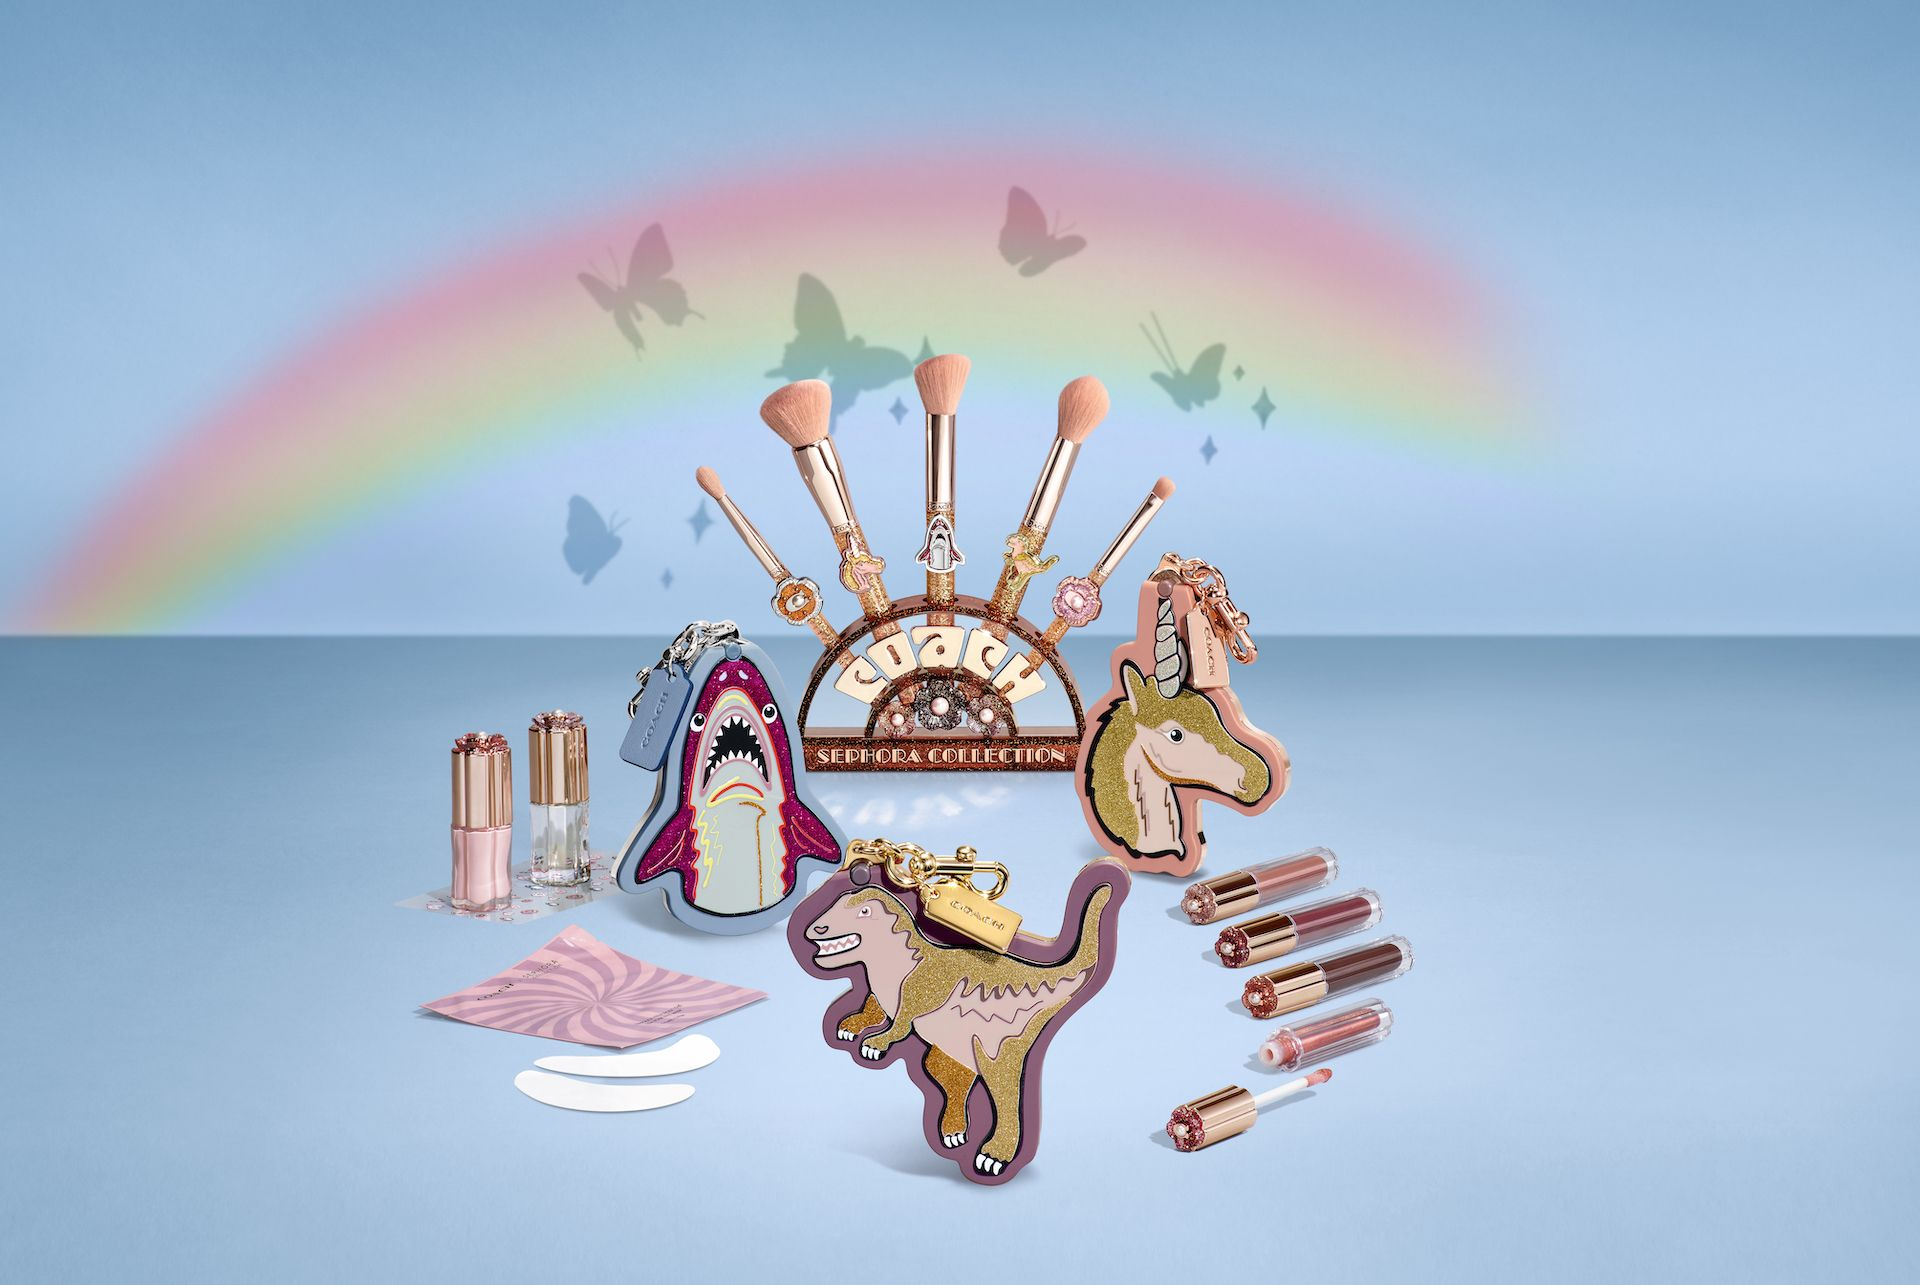 Coach x Sephora's Make-Up Collection Is A Playful Take On Beauty